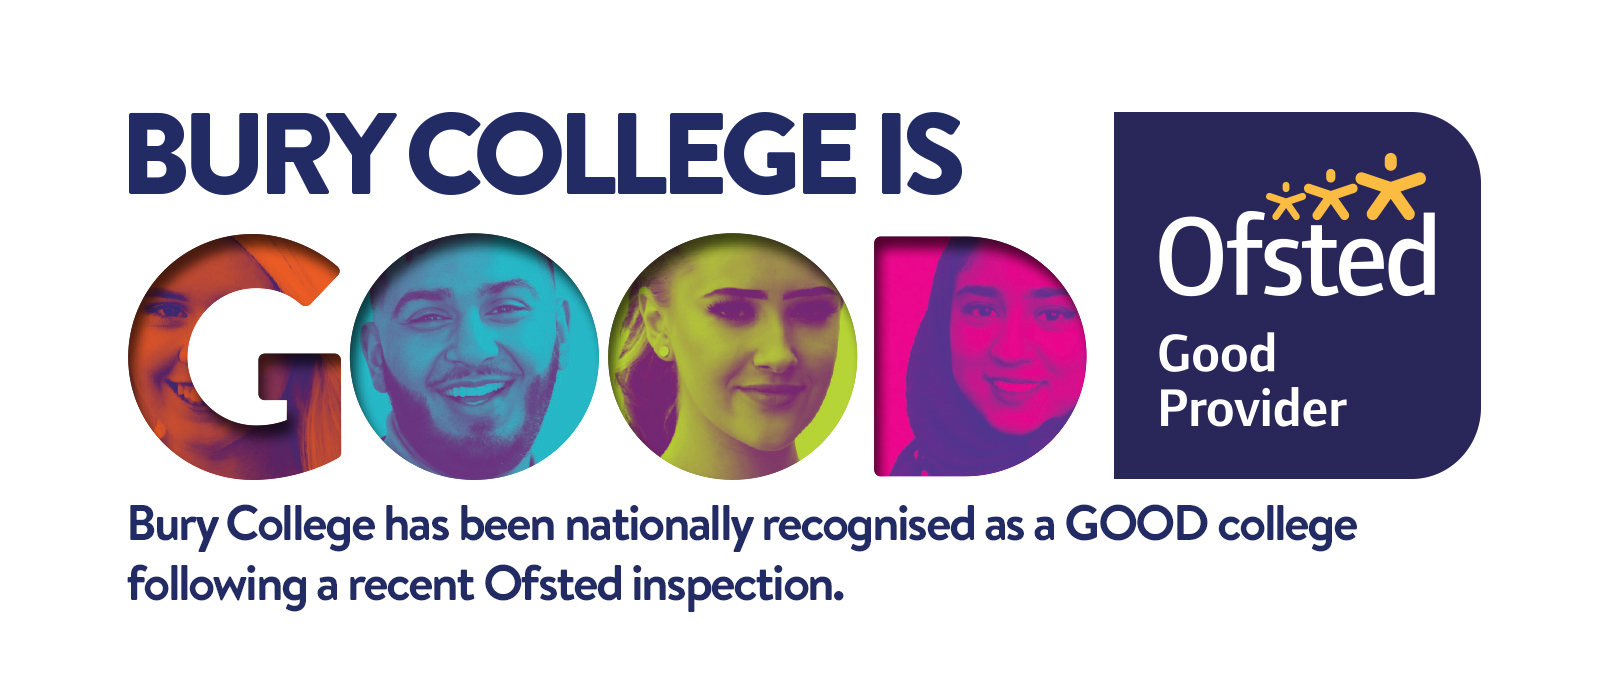 Bury College Ofsted - Good